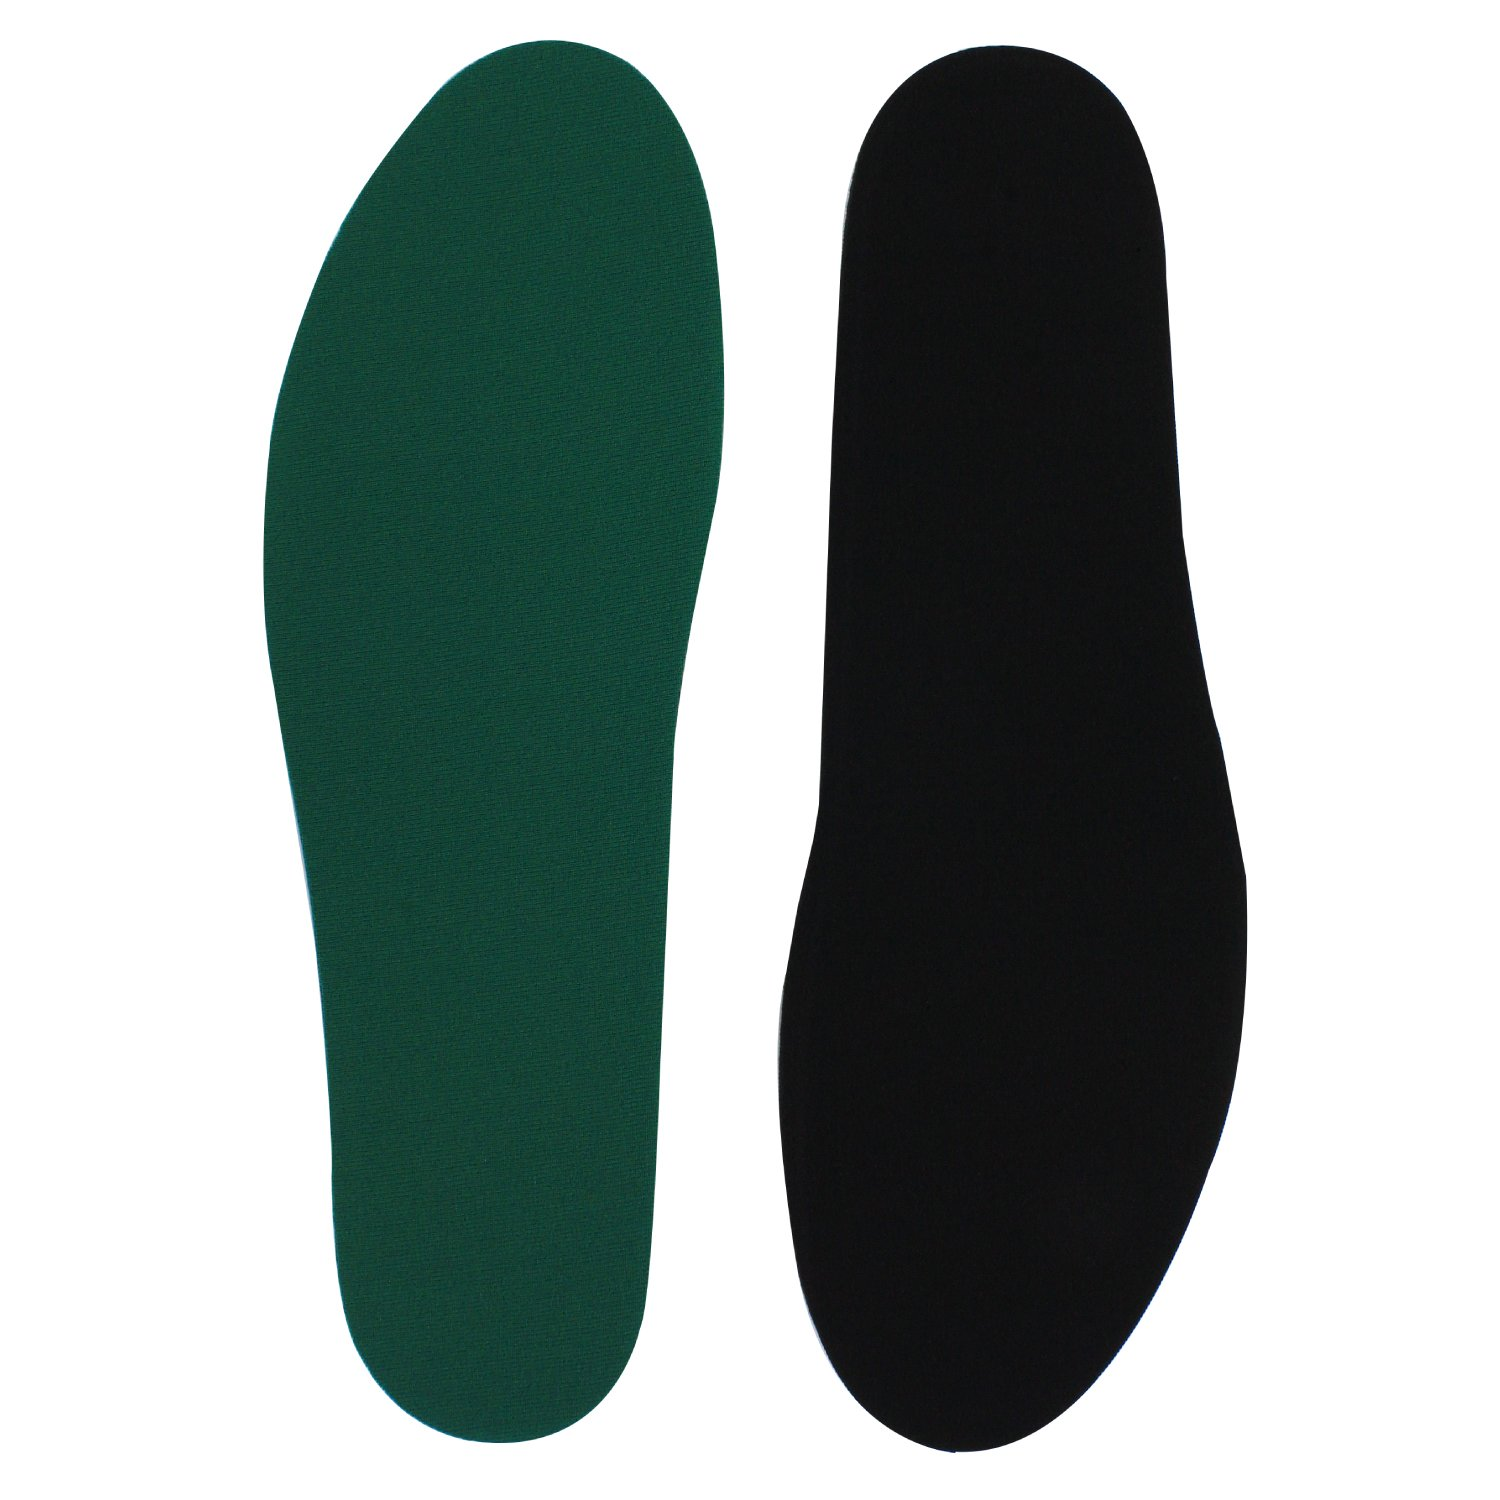 Spenco Comfort Insole 2 Pack Z653l09n